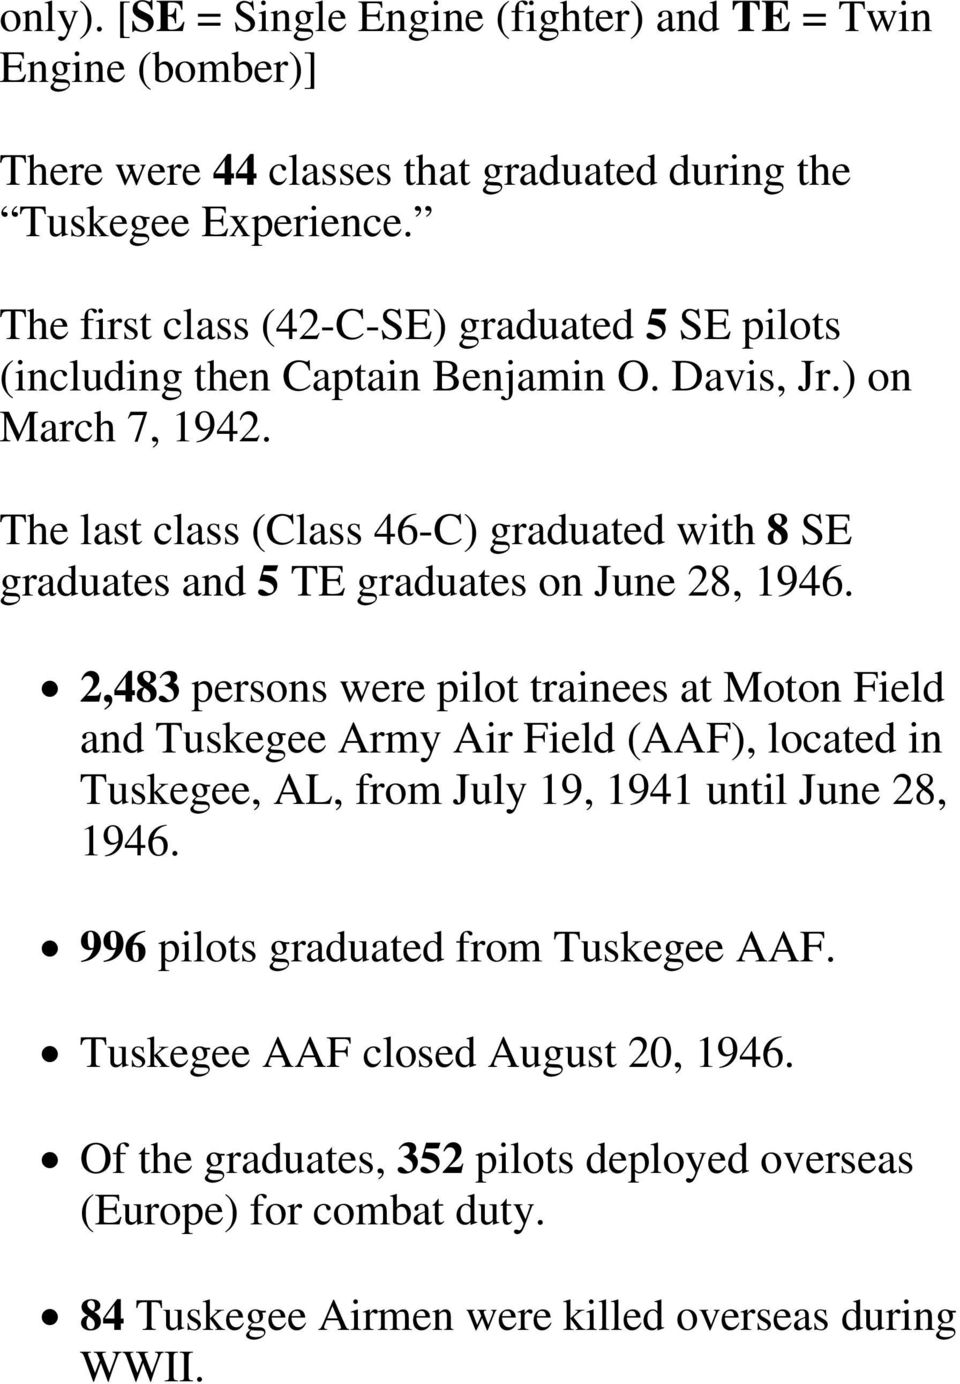 The last class (Class 46-C) graduated with 8 SE graduates and 5 TE graduates on June 28, 1946.